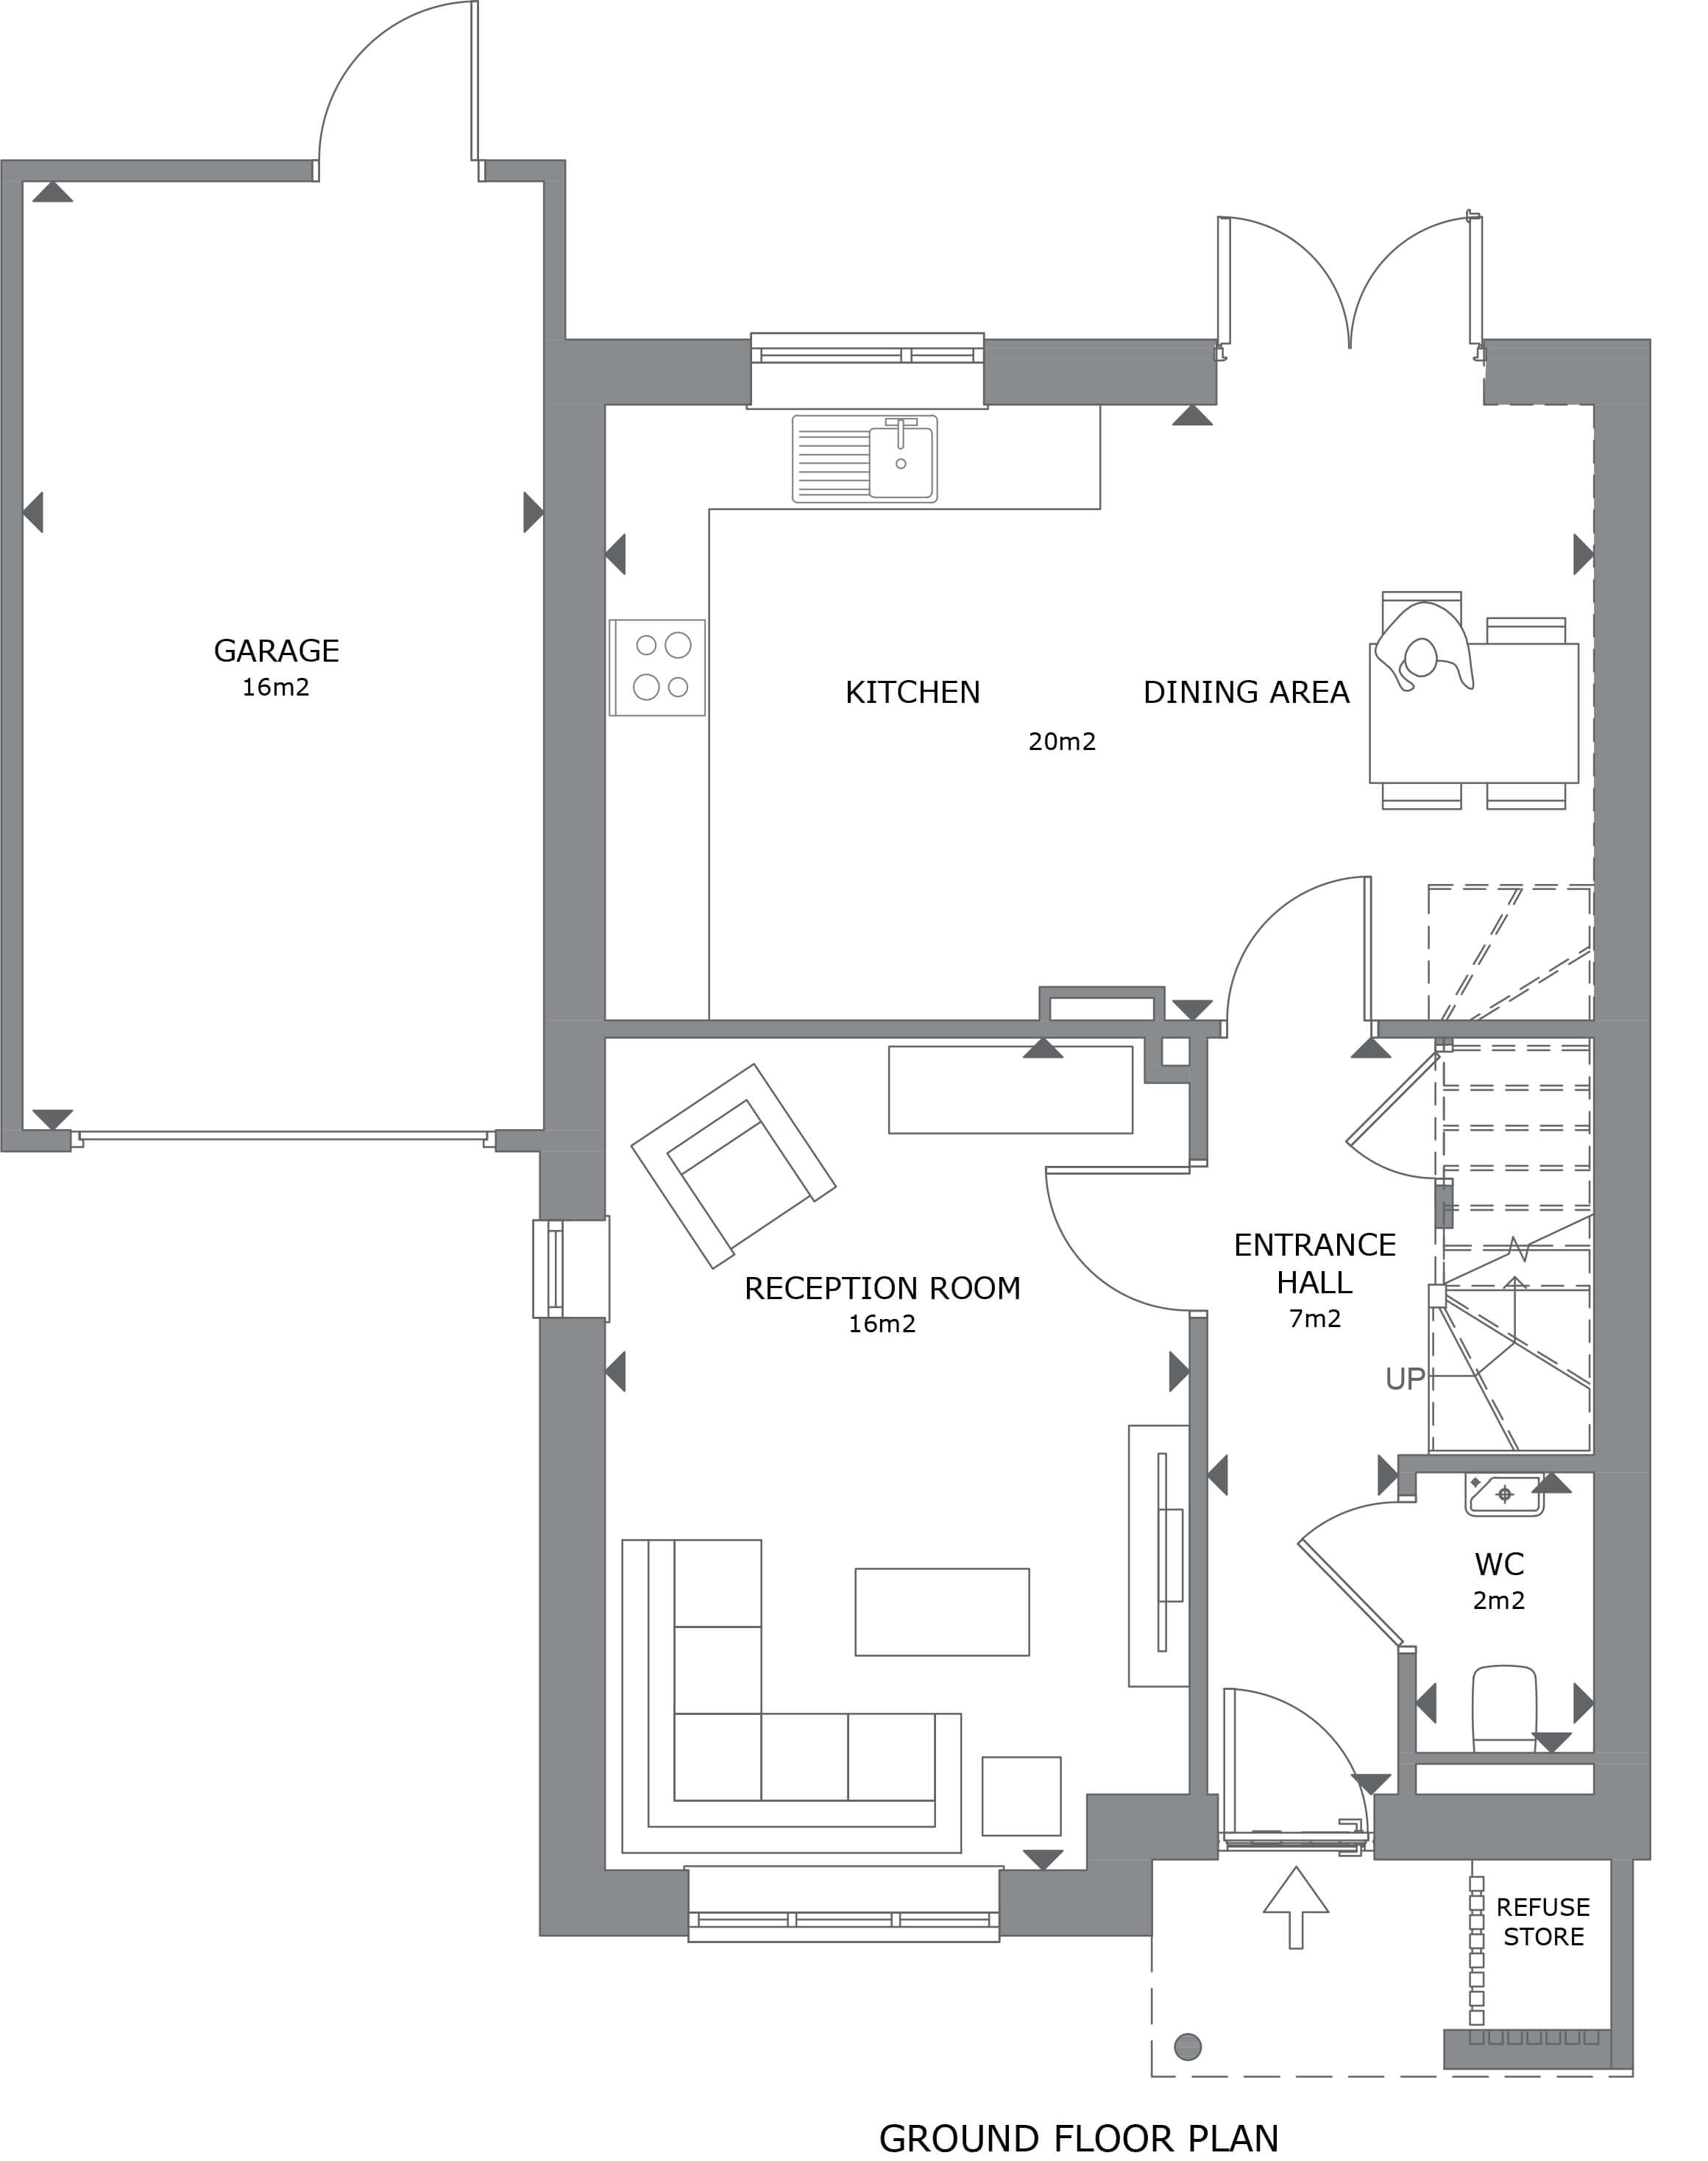 013 Crantock House 39 Ground Floor Plan Marketing - House 31 - 3 Bedroom Semi-Detached Home